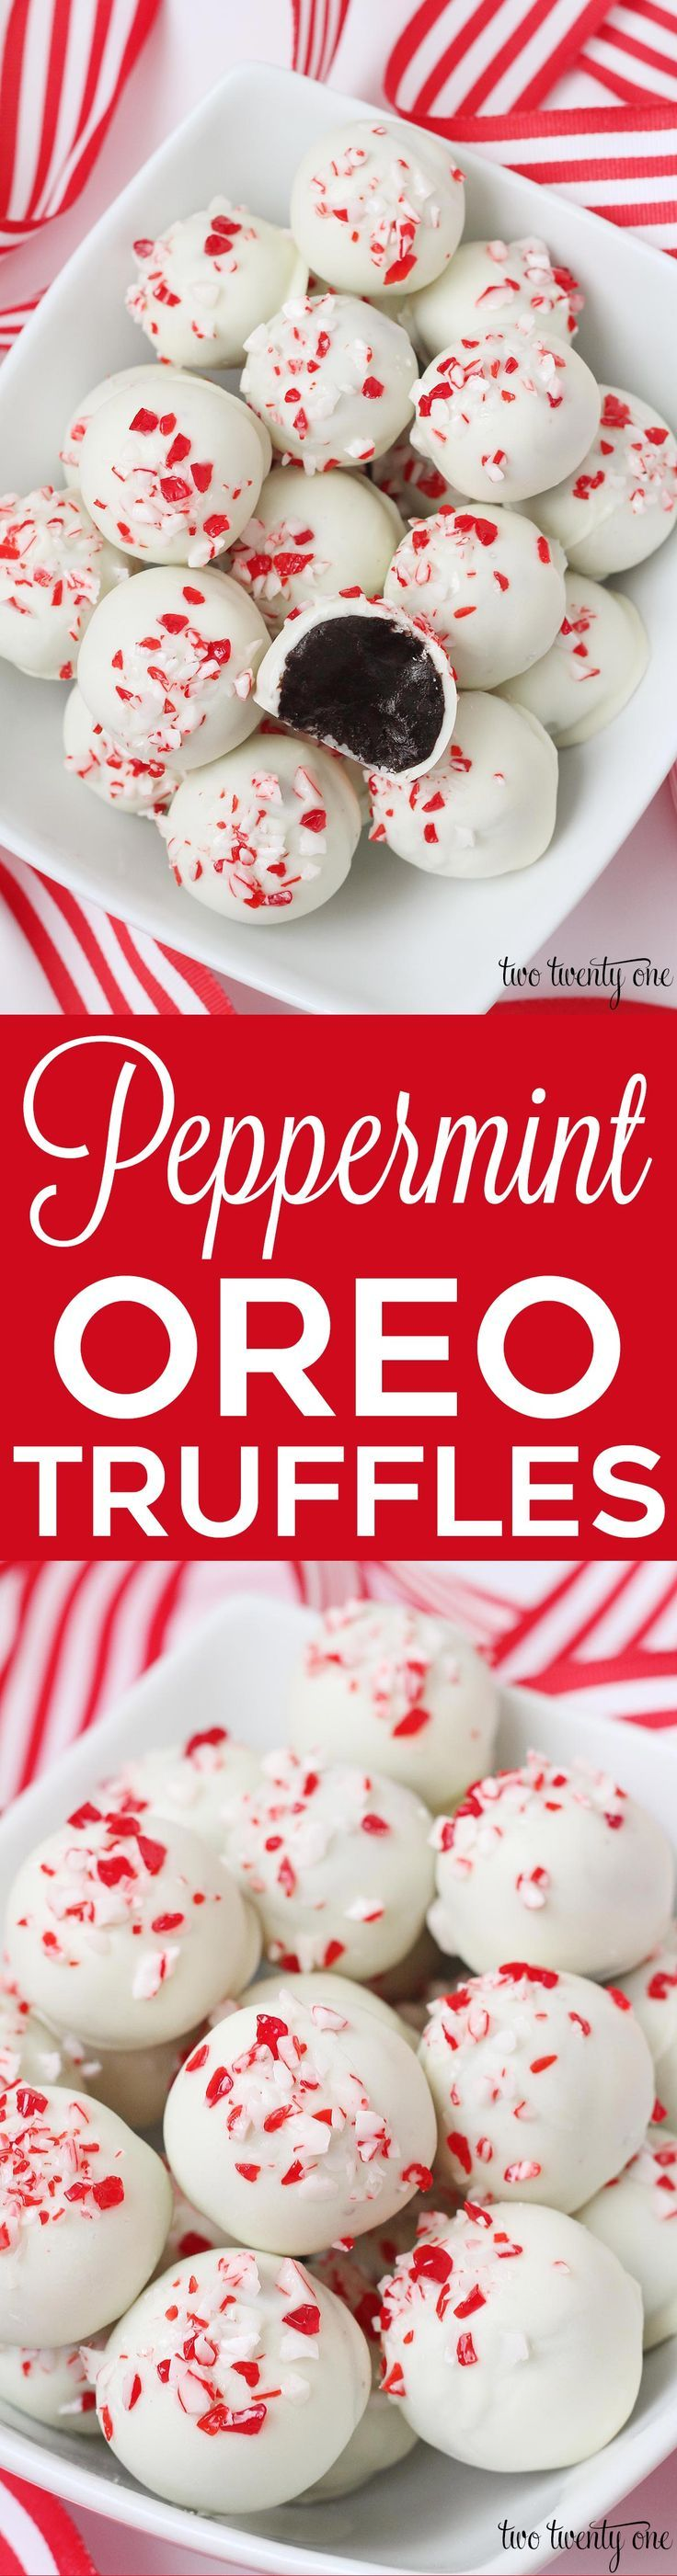 Peppermint Oreo Truffles! Delicious holiday treats with only 5 ingredients!